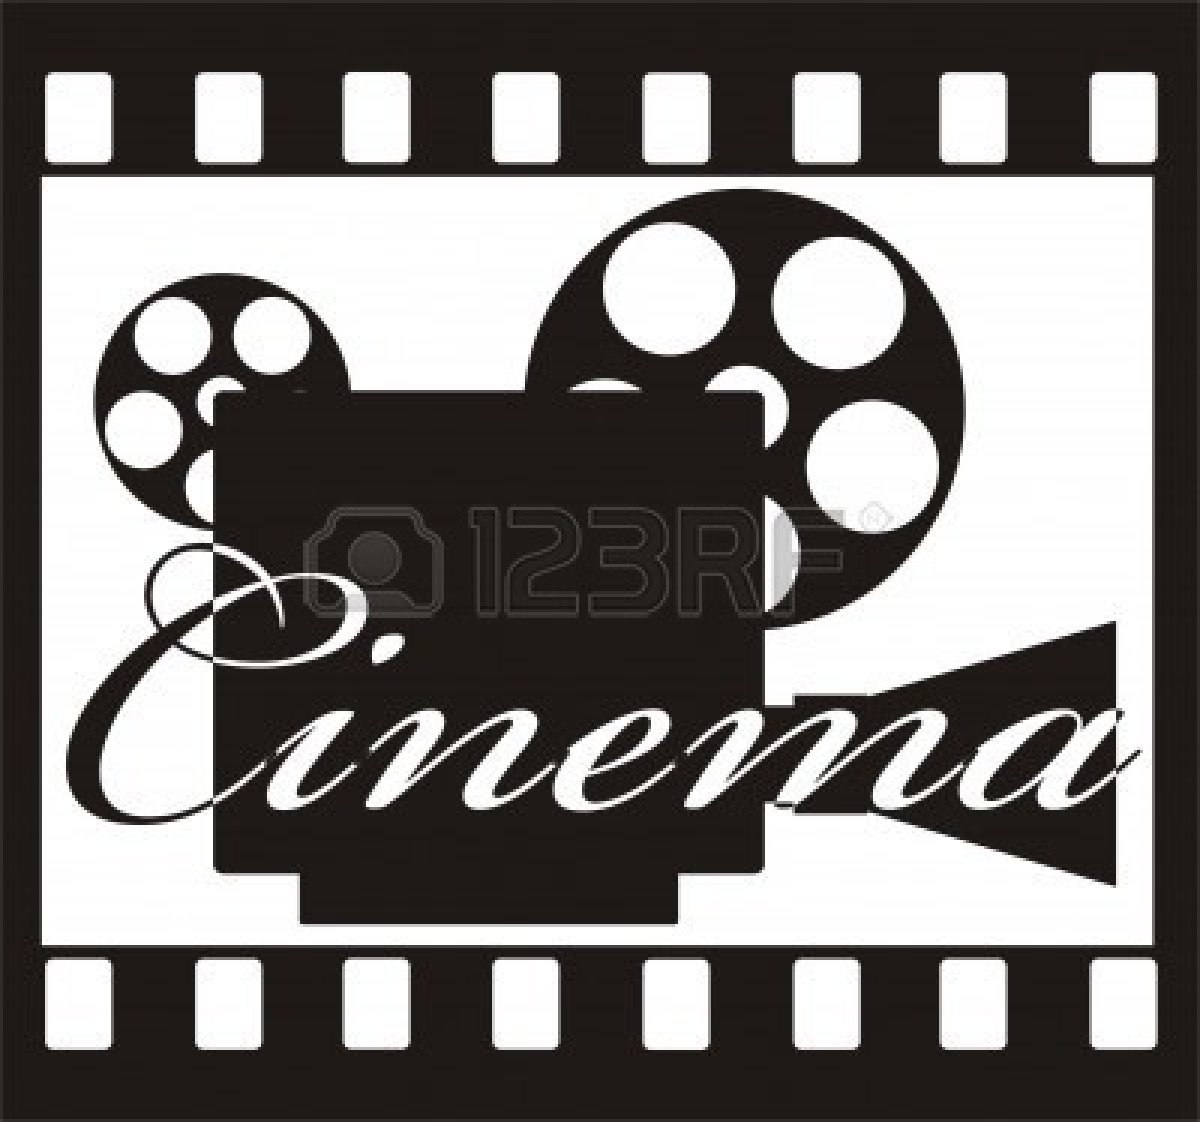 Clip Art Theater Clip Art movie theater clipart black and white panda free